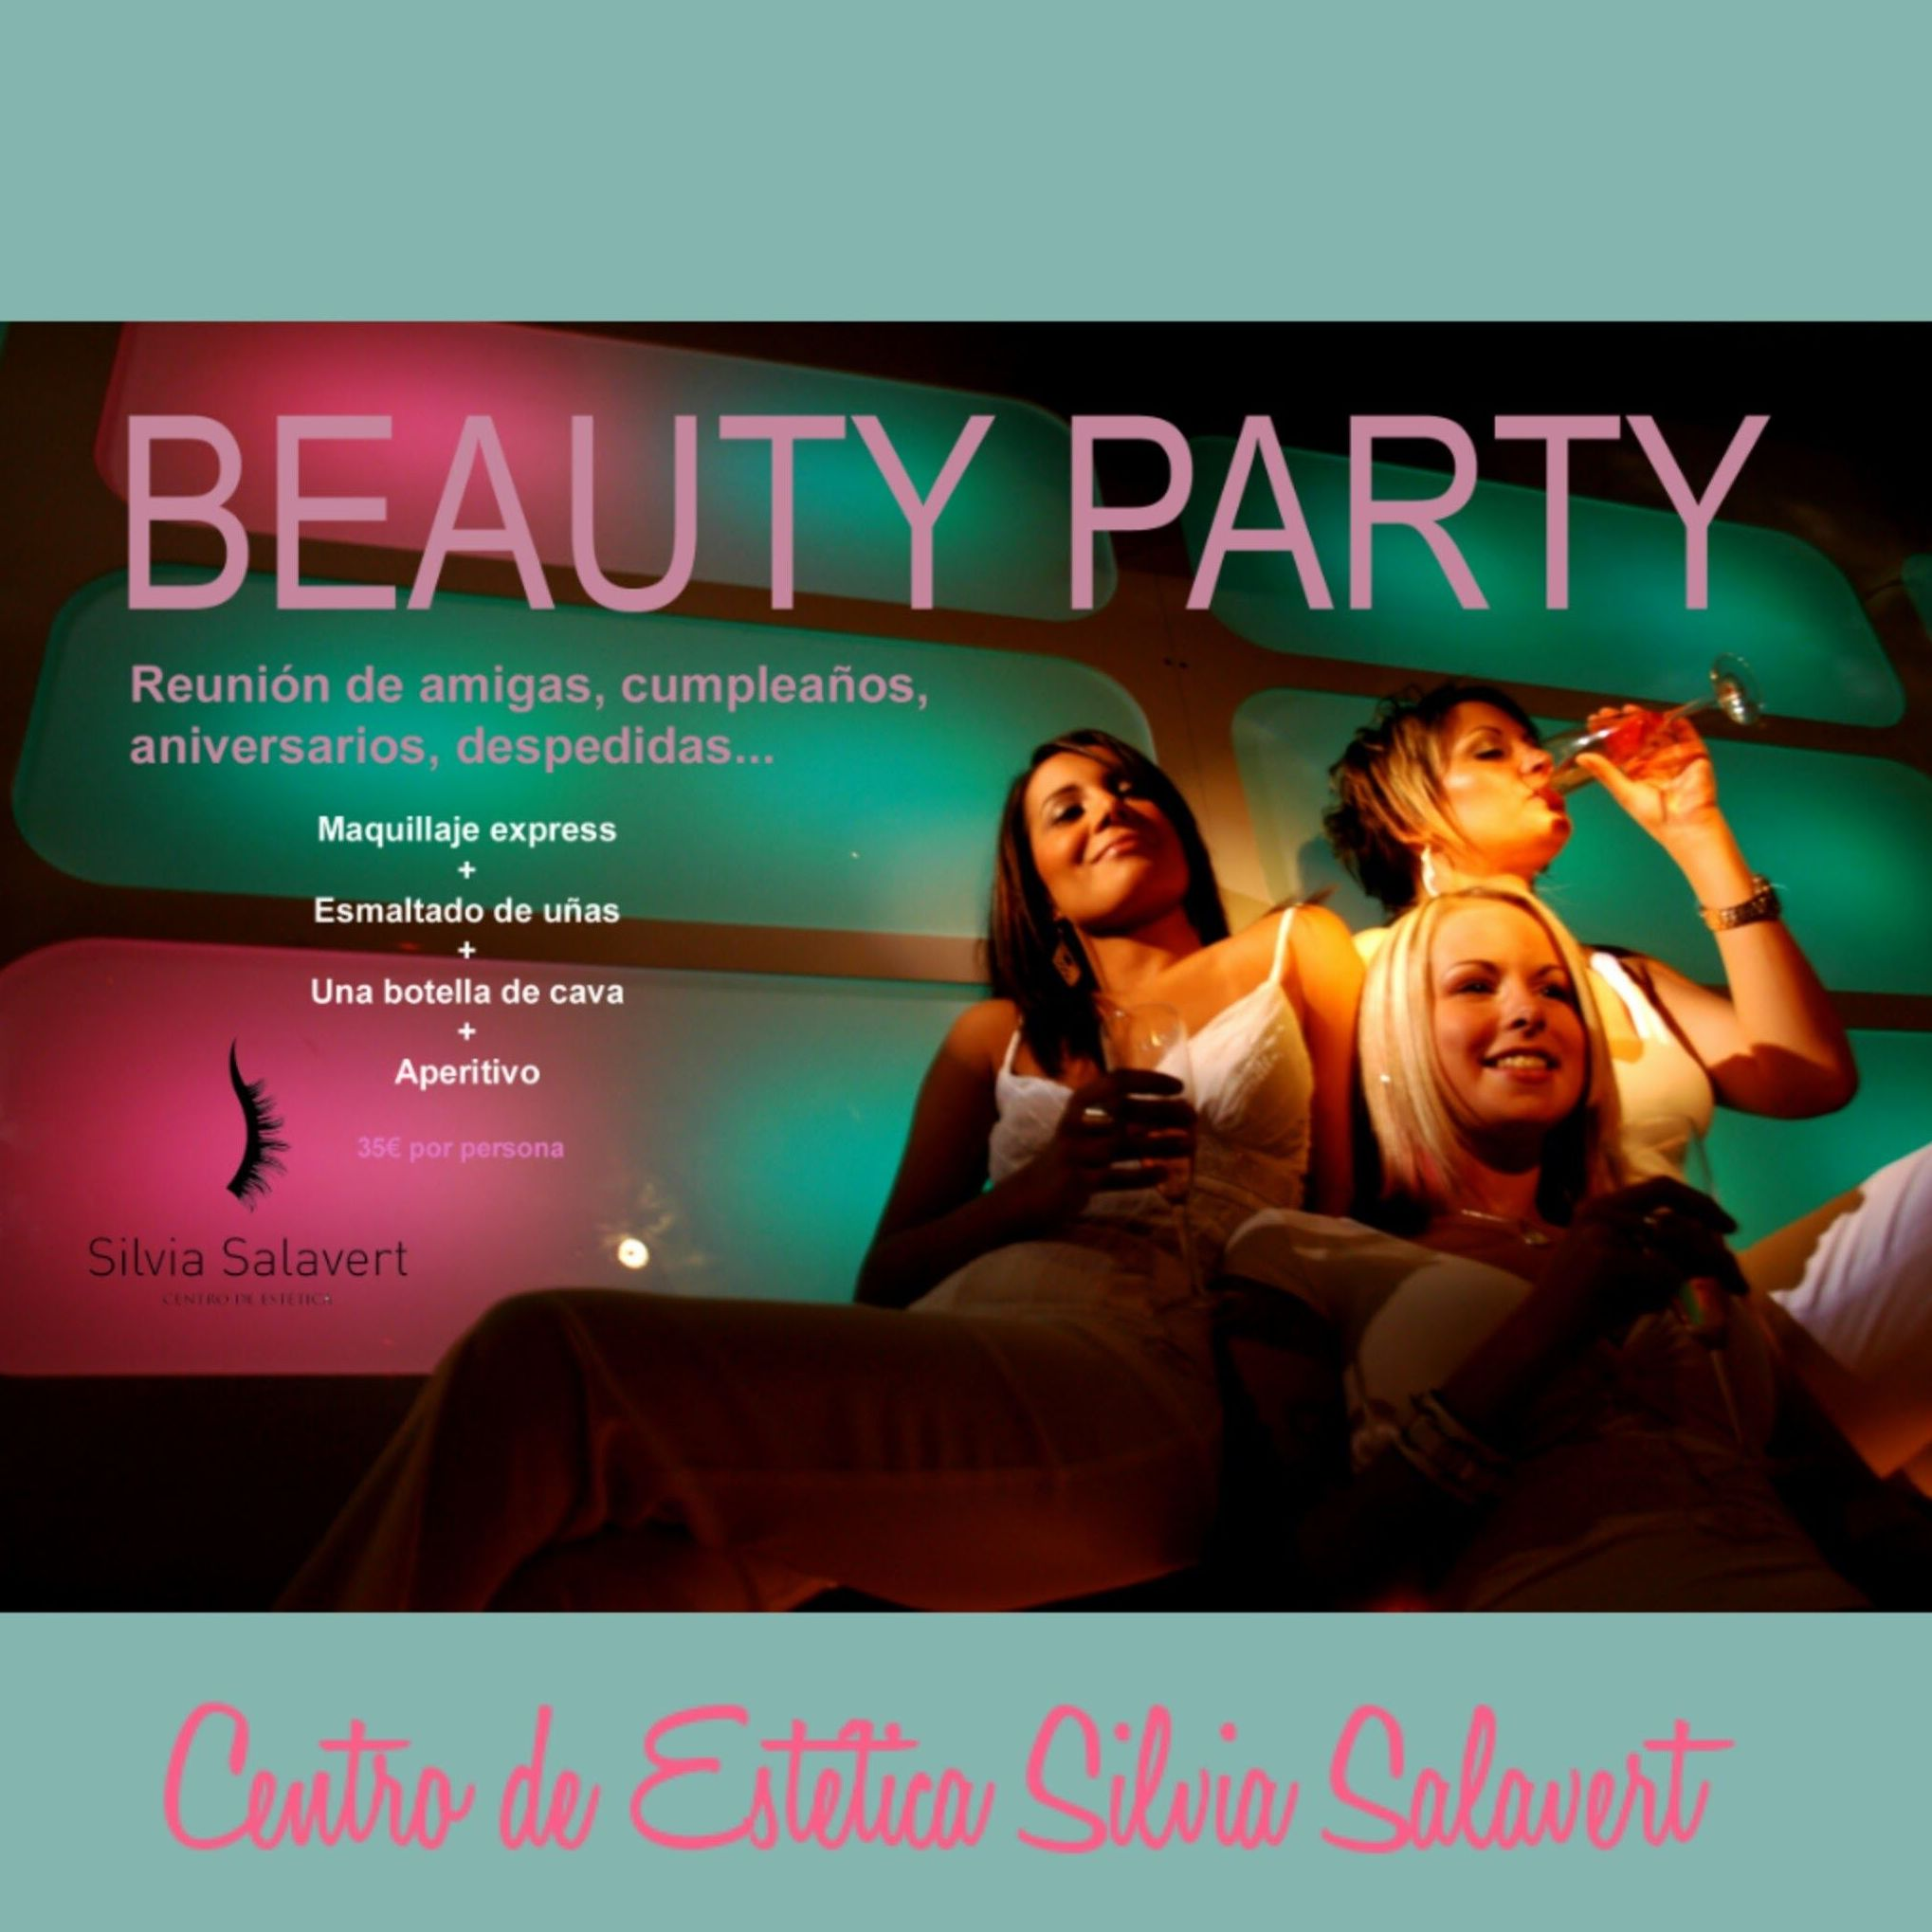 Beauty Party para compartir con amigas